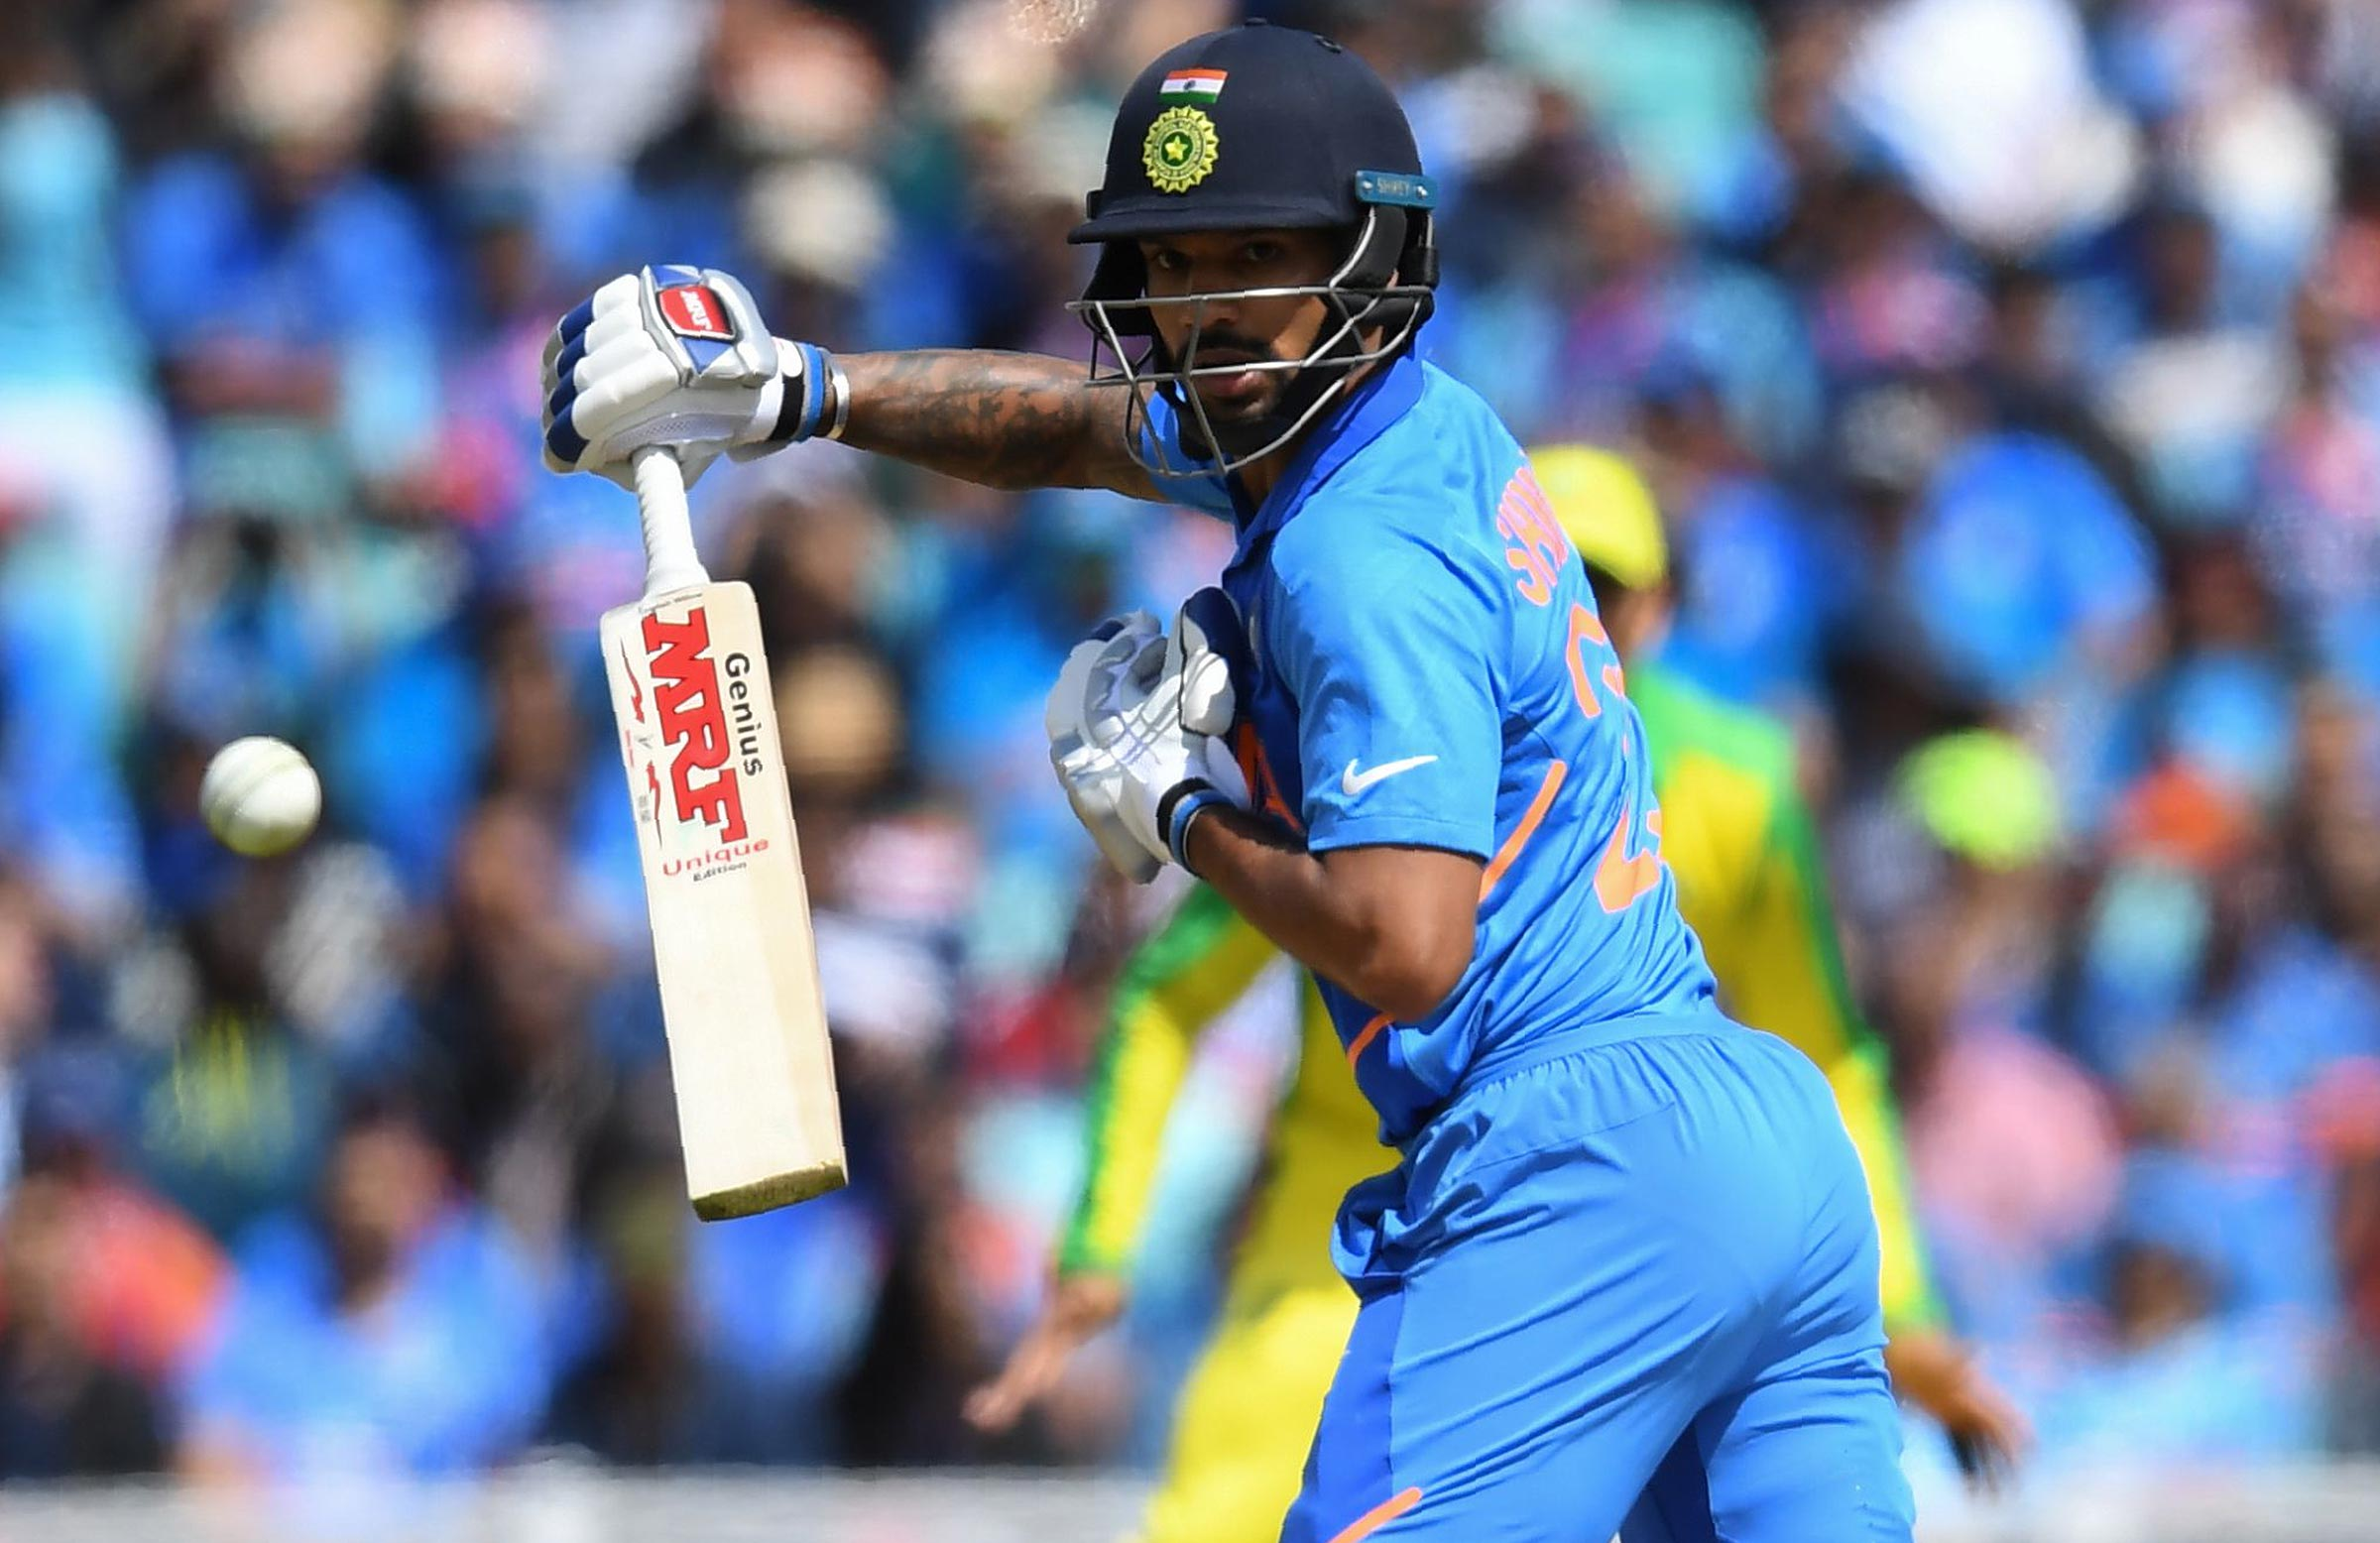 Dhawan removed his hand from the bat at The Oval // Getty